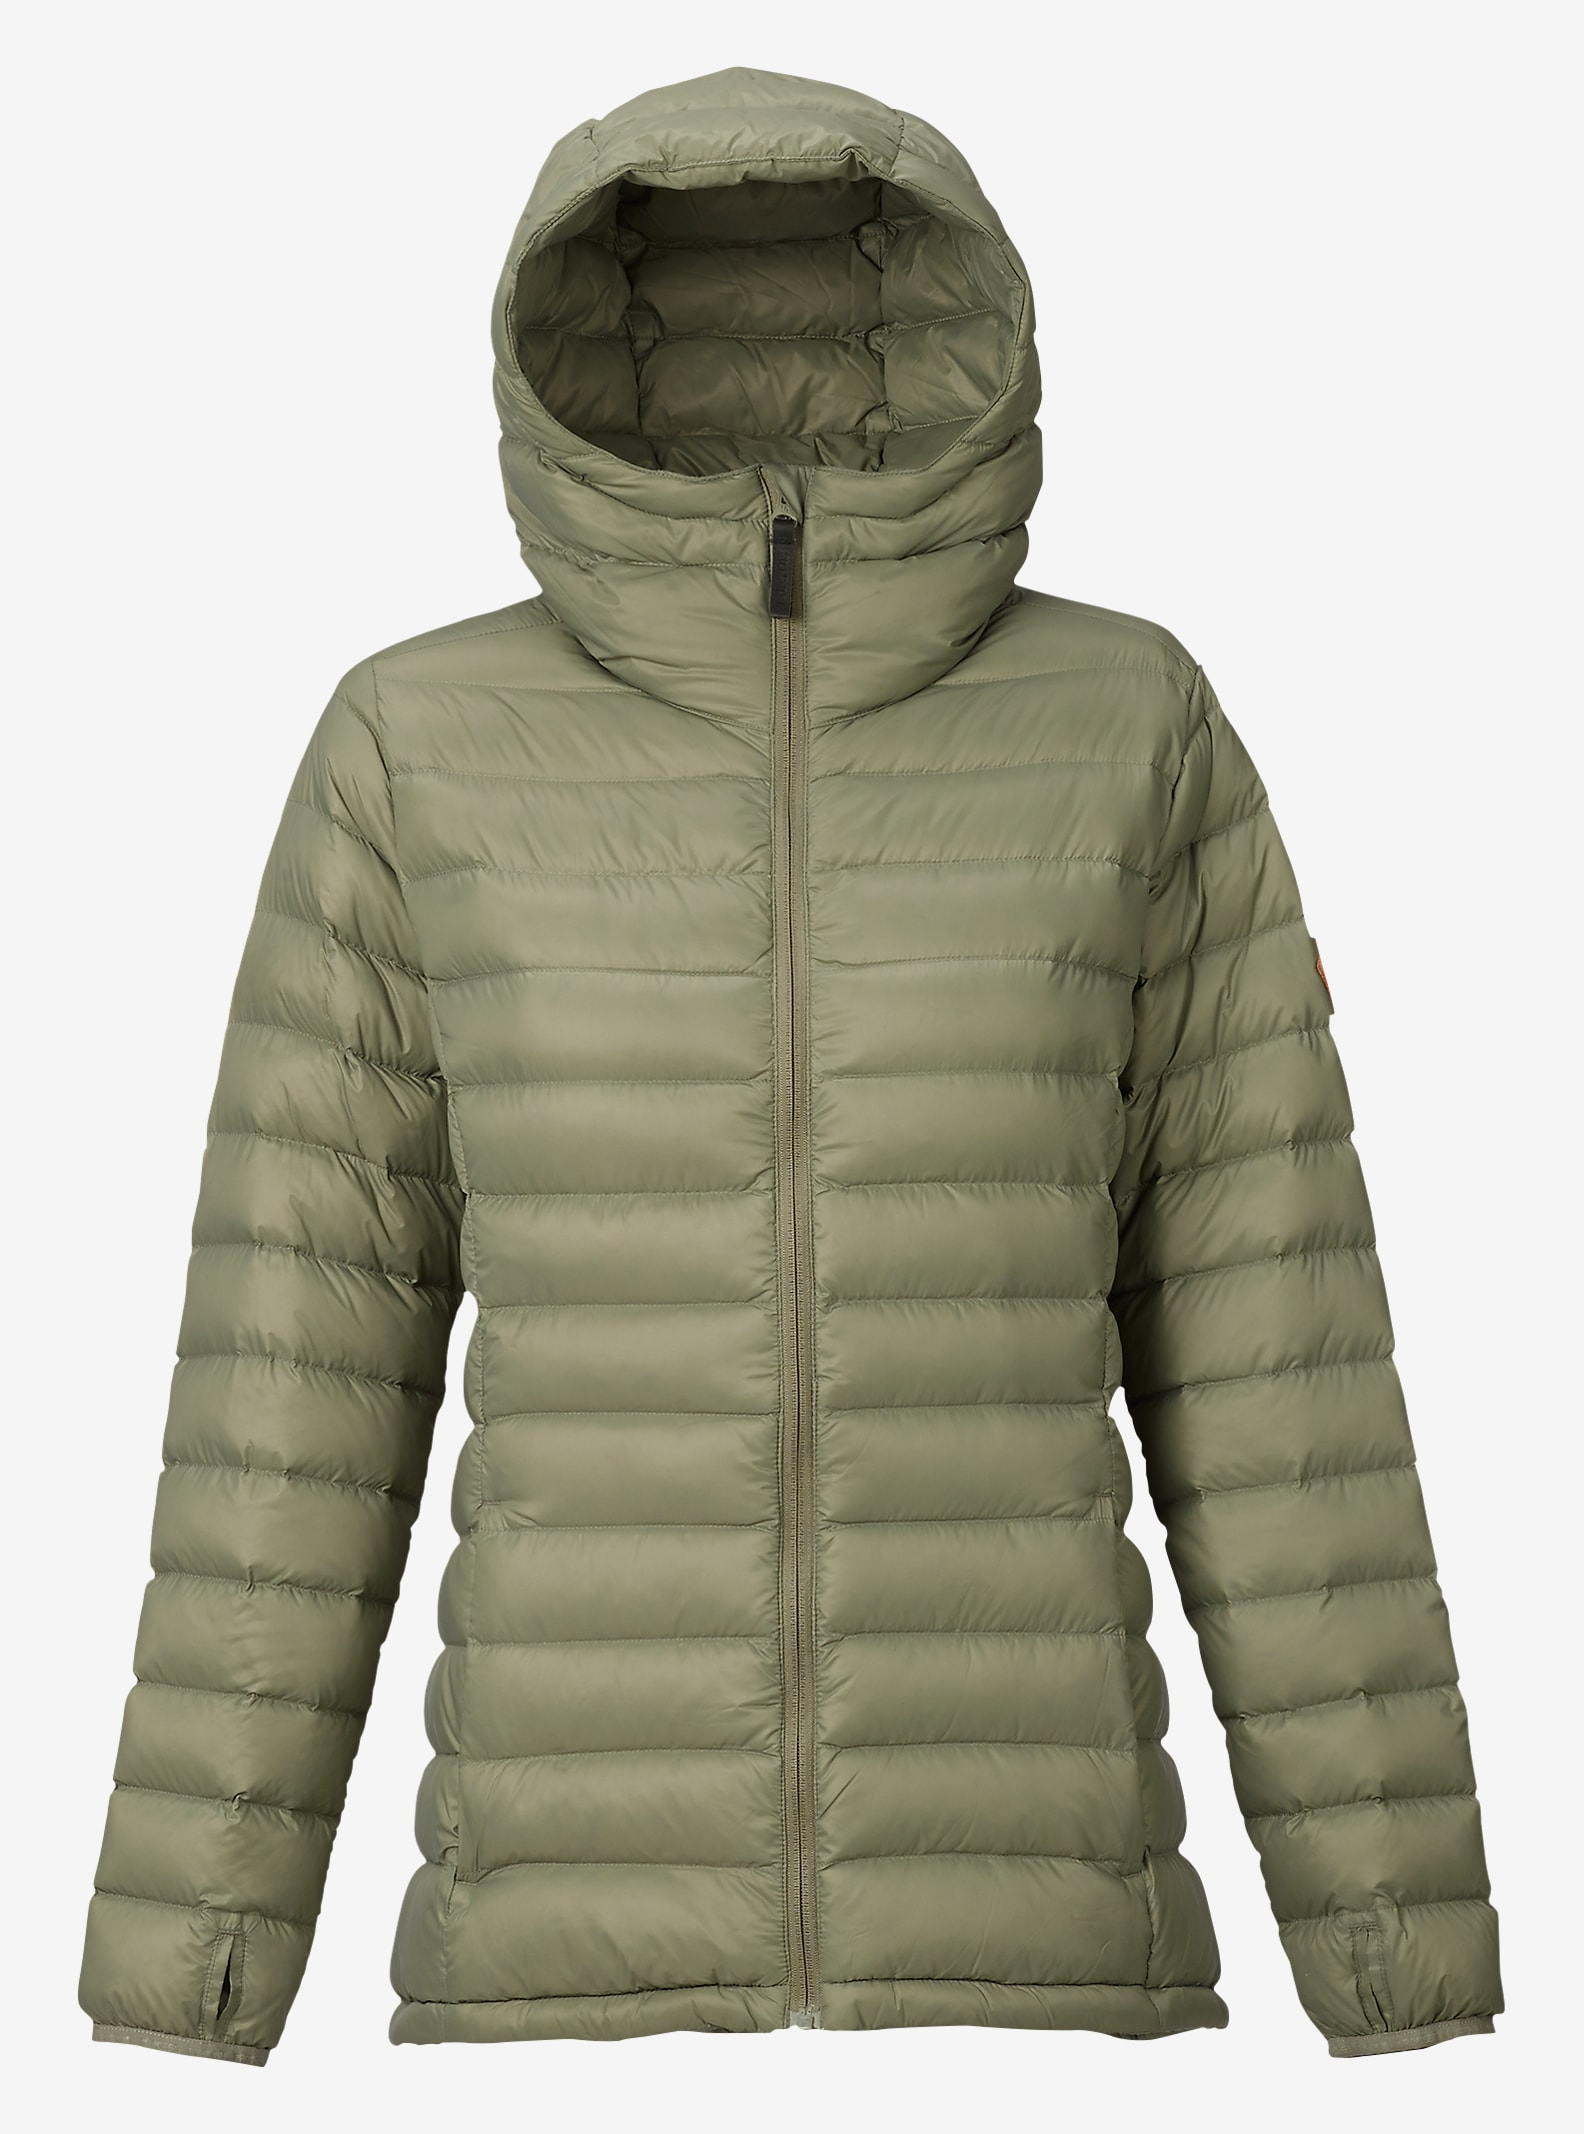 Burton Women's Evergreen Hooded Down Insulator shown in Vetiver